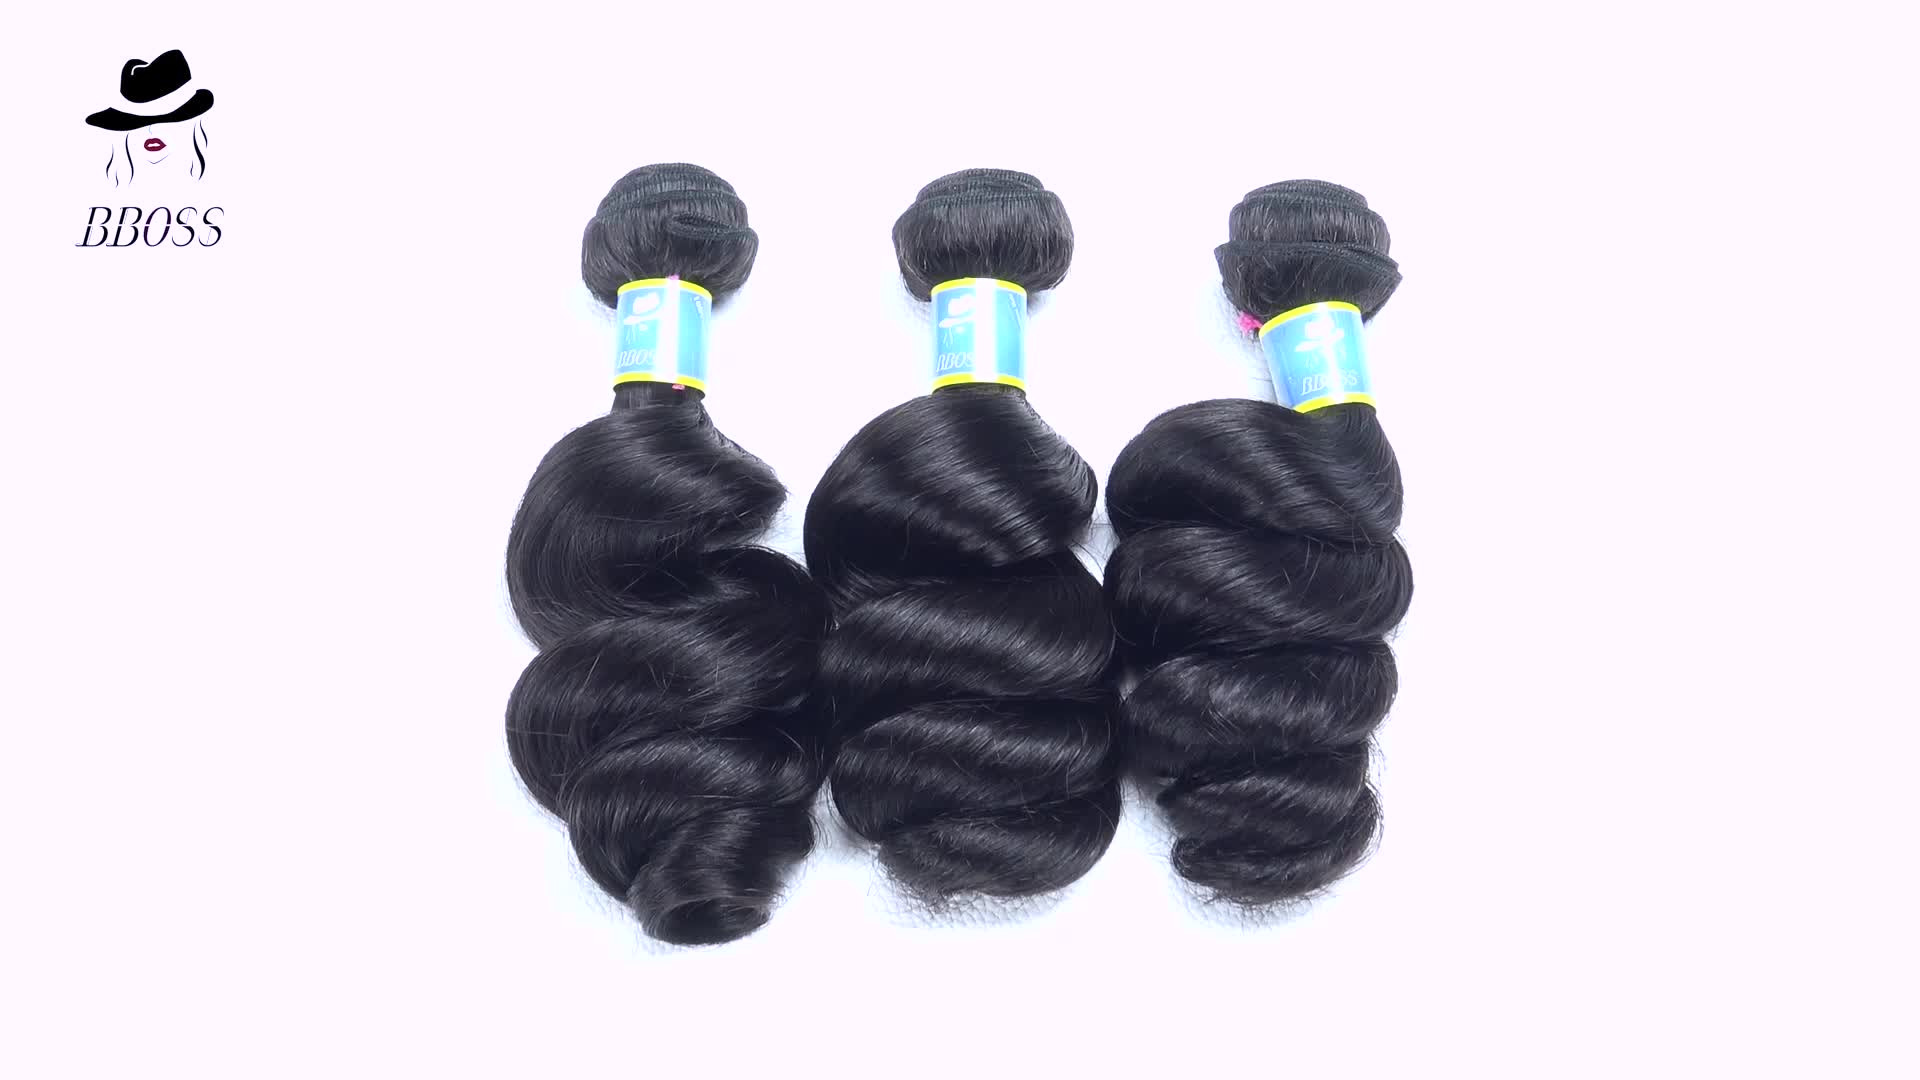 cash on delivery hair real hair extensions price,wholesale pound hair burmese virgin hair,8 inch virgin remy brazilian hair weft